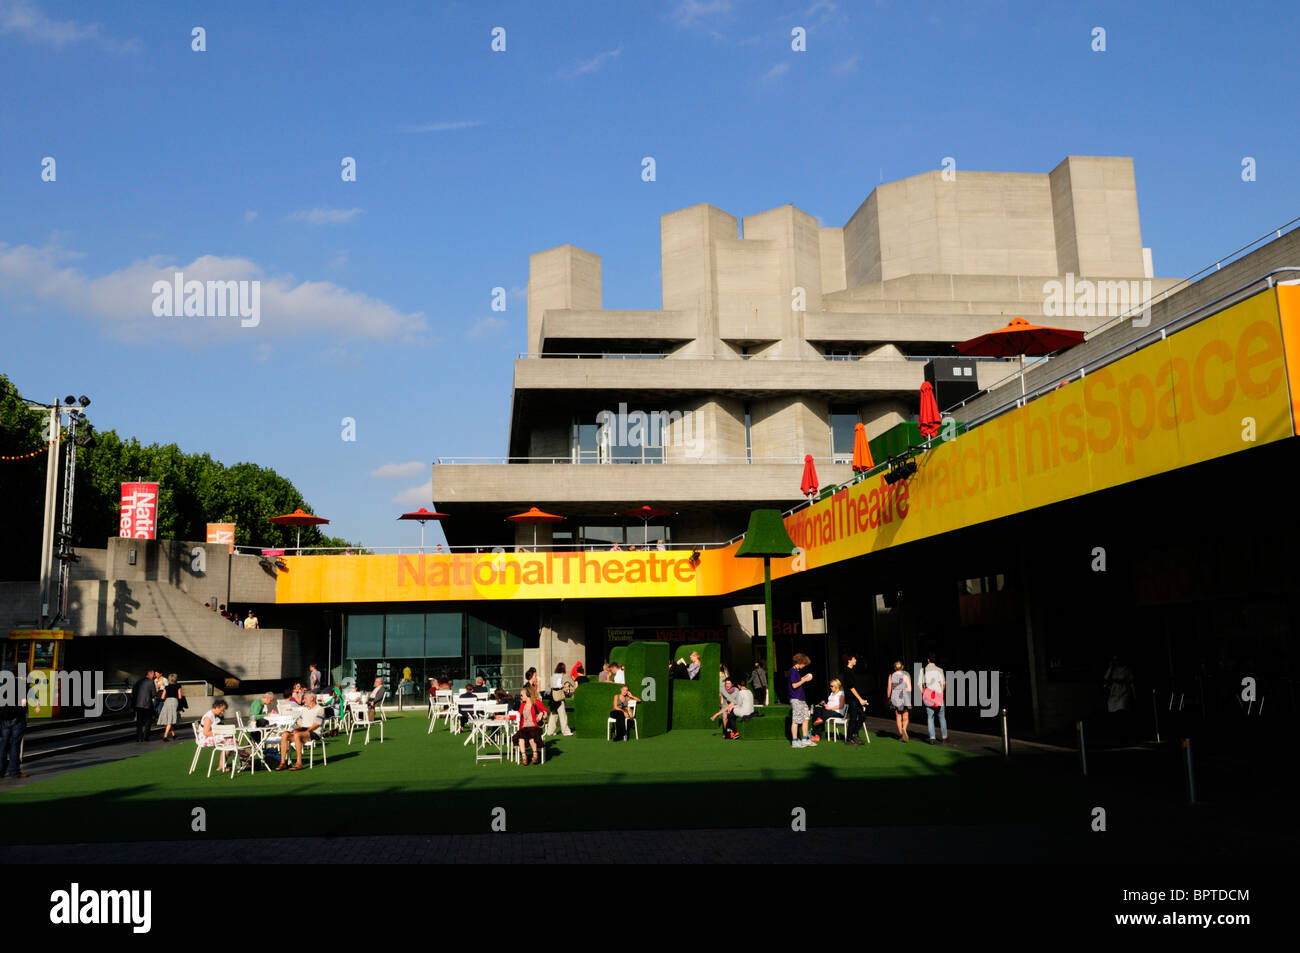 The National Theatre, South bank, London, England, UK - Stock Image